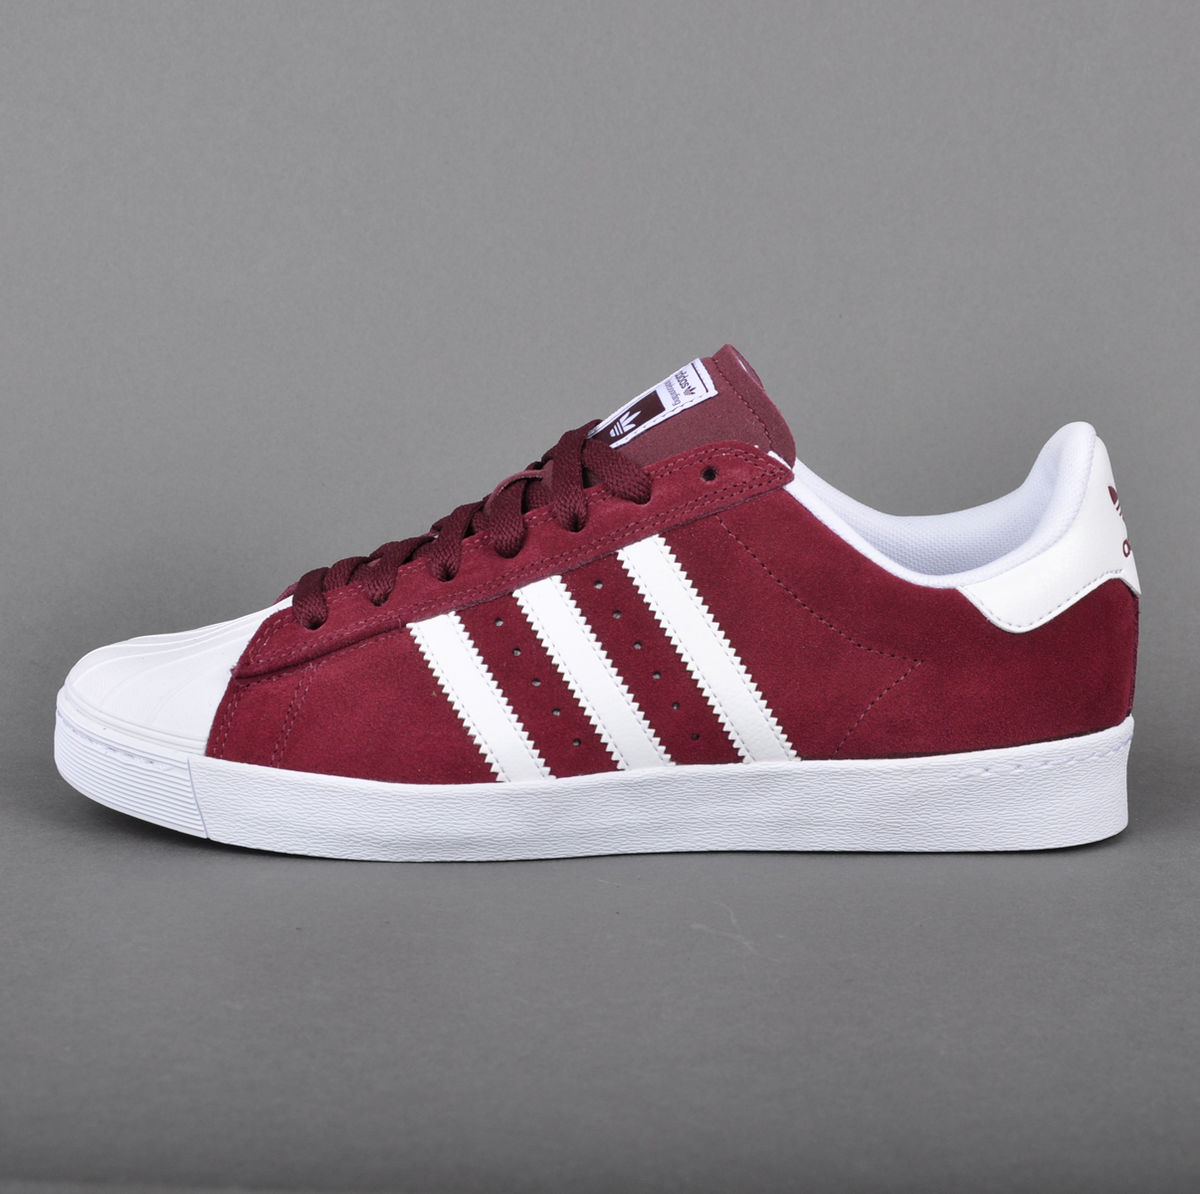 adidas Superstar Sneakers Shoe Connection